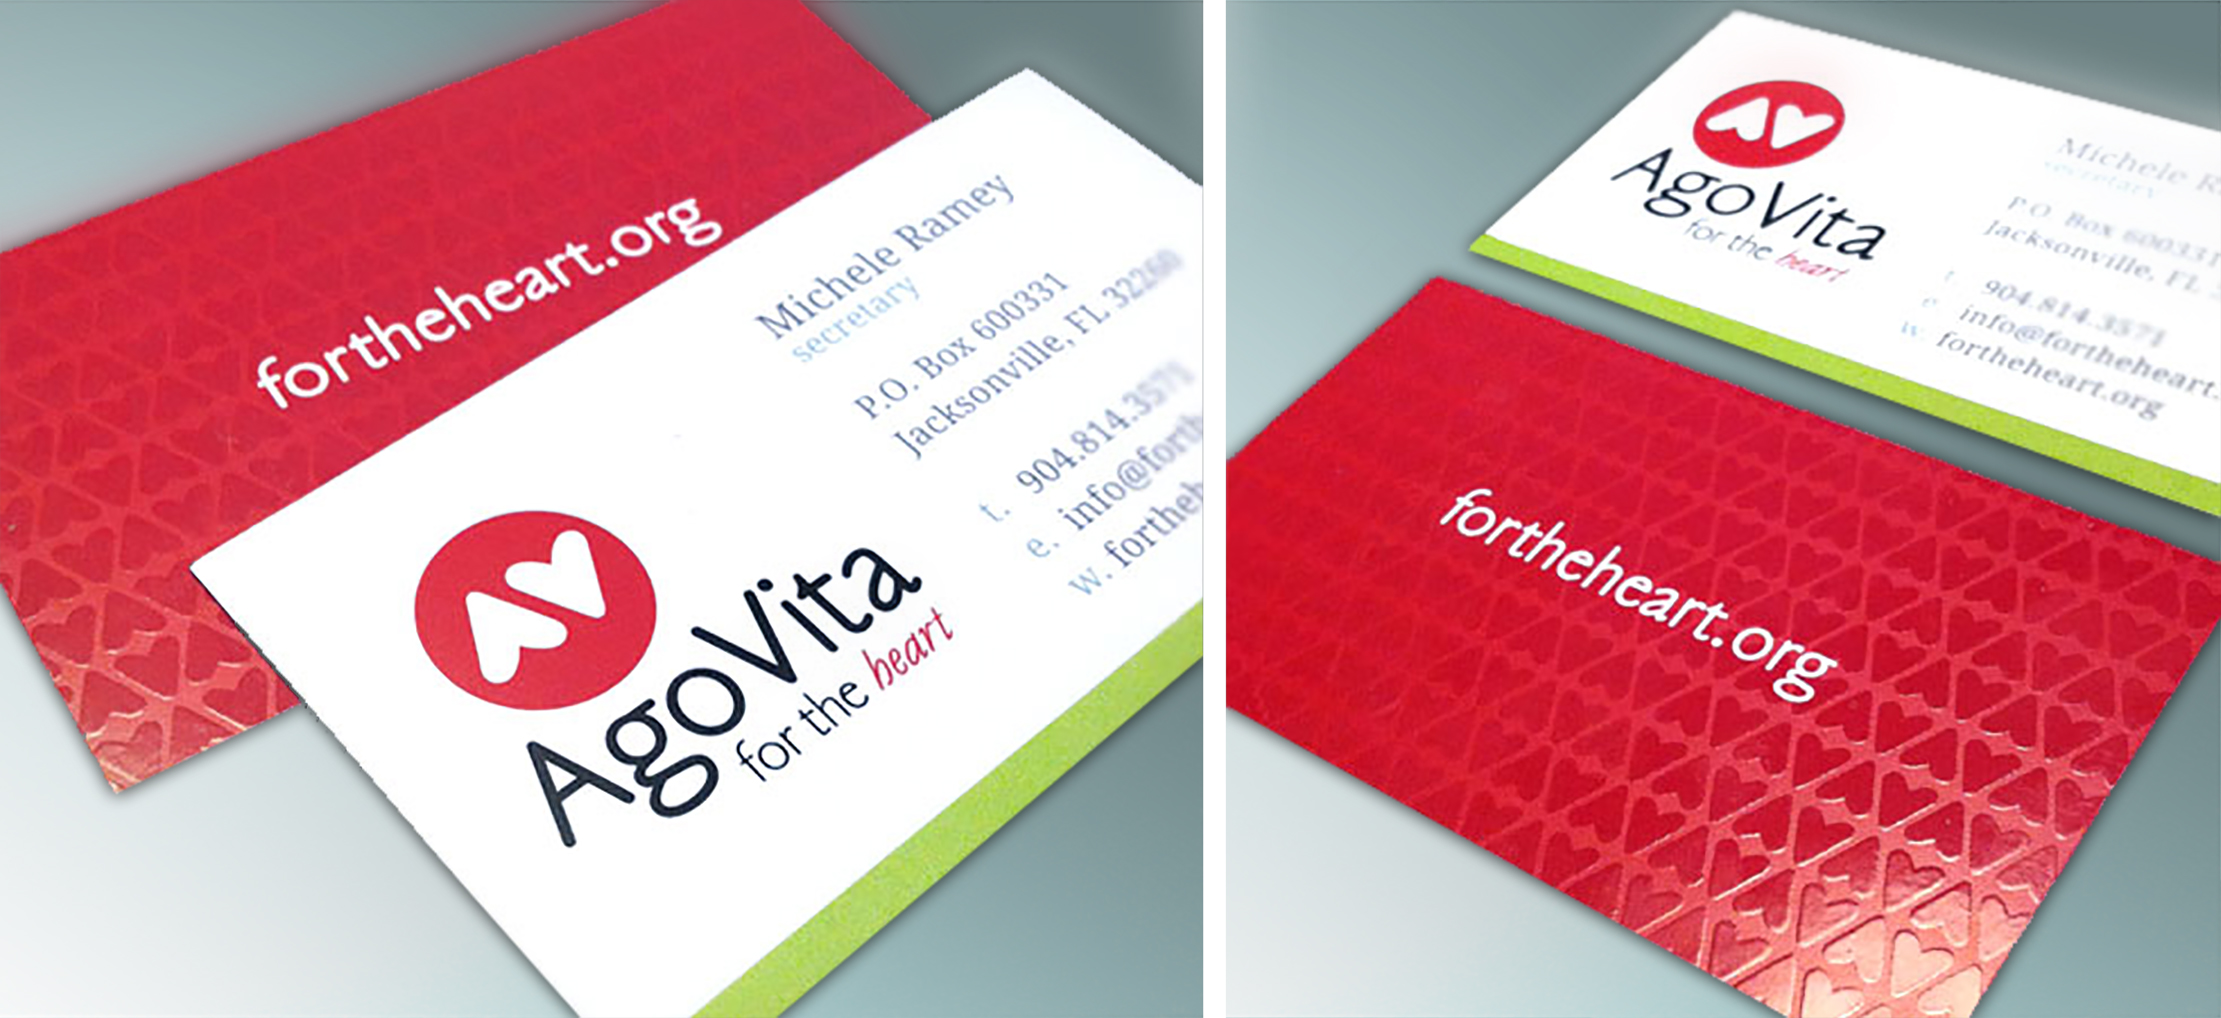 Ago Vita Business Card Design by Just Make Things